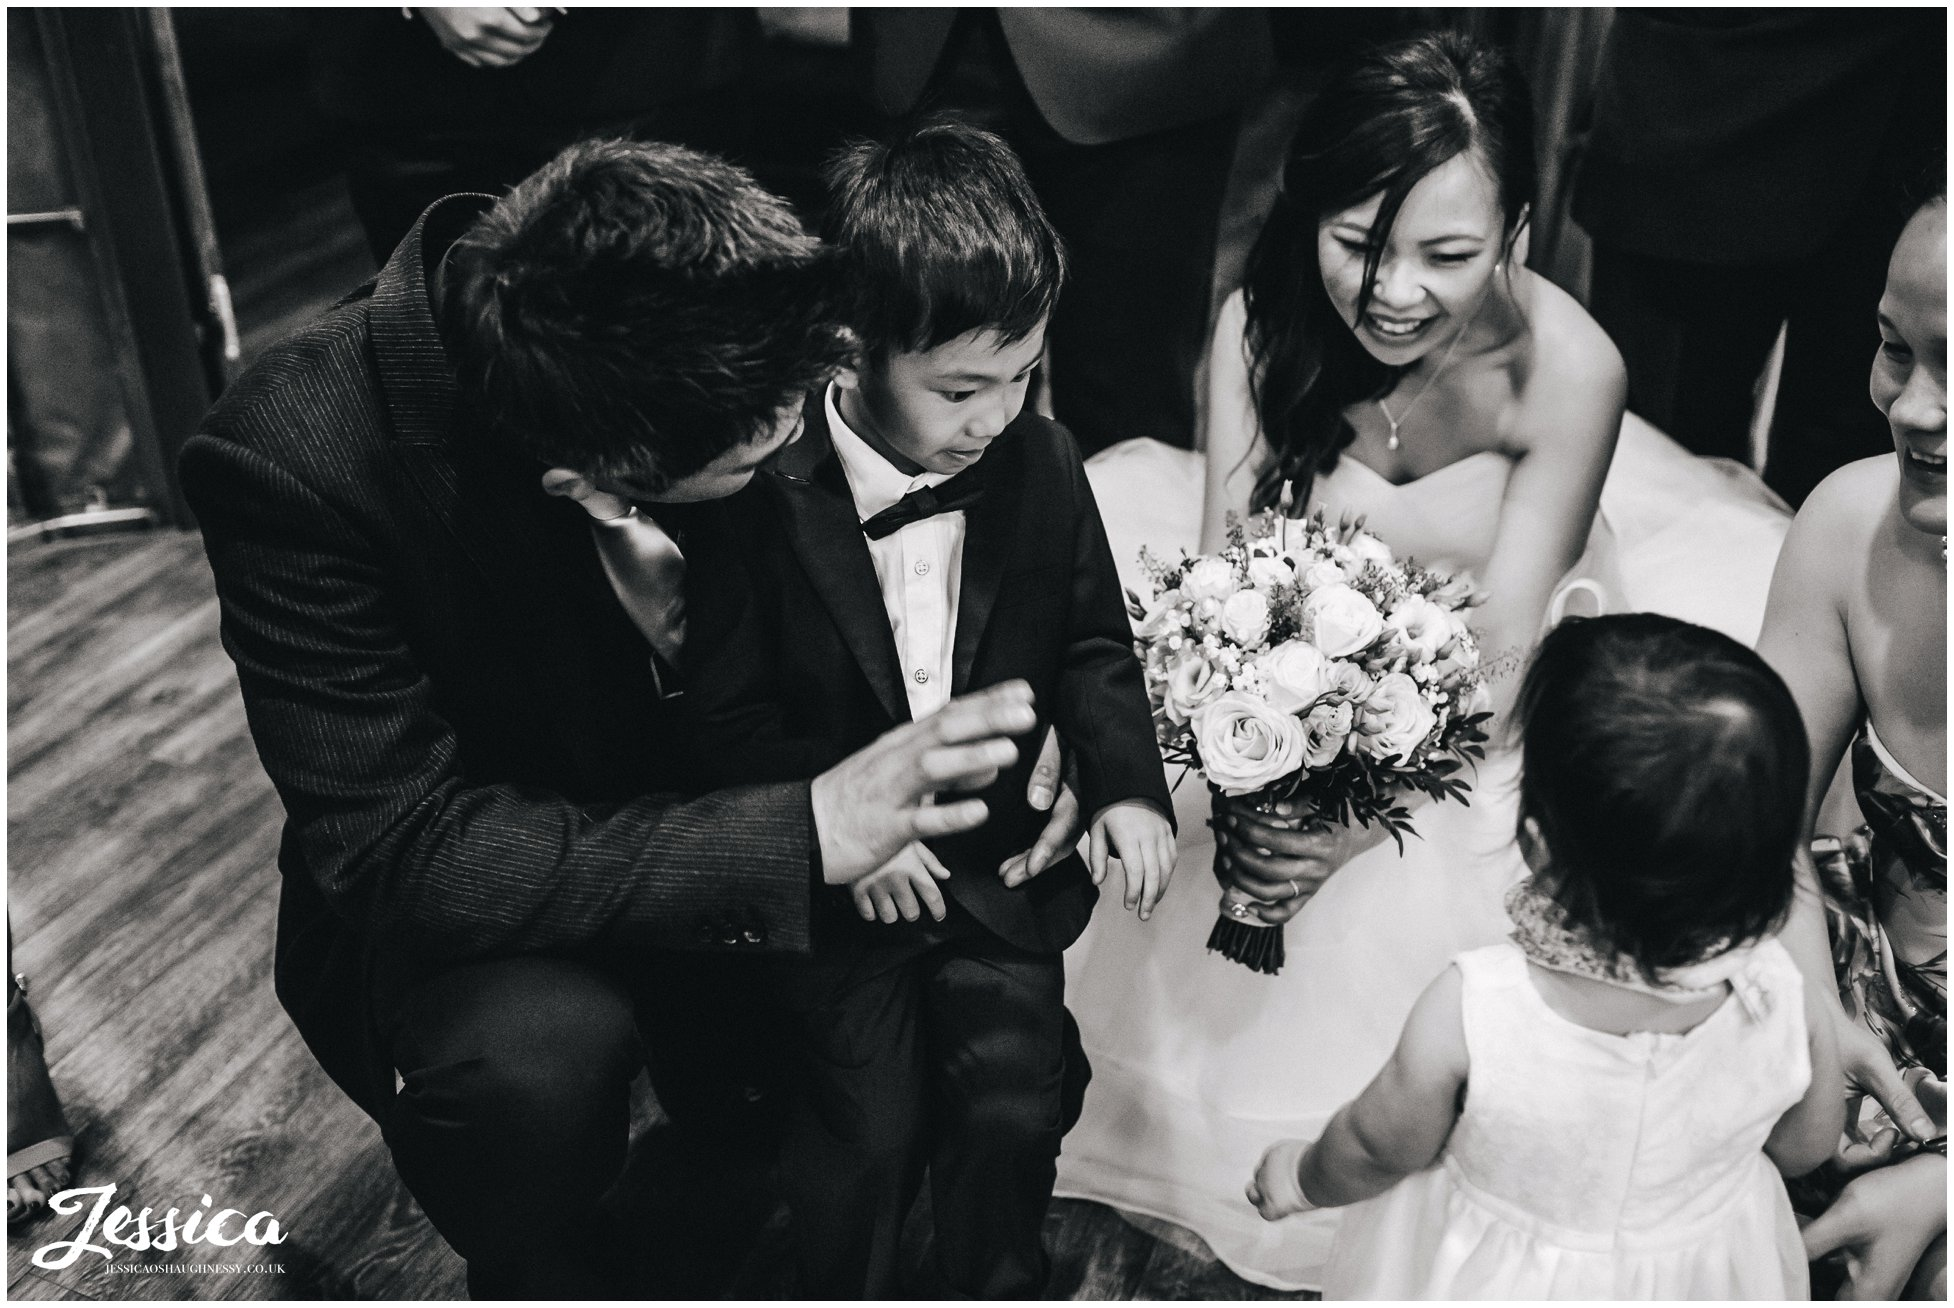 newly wed's play with children at their wedding reception in salford, manchester